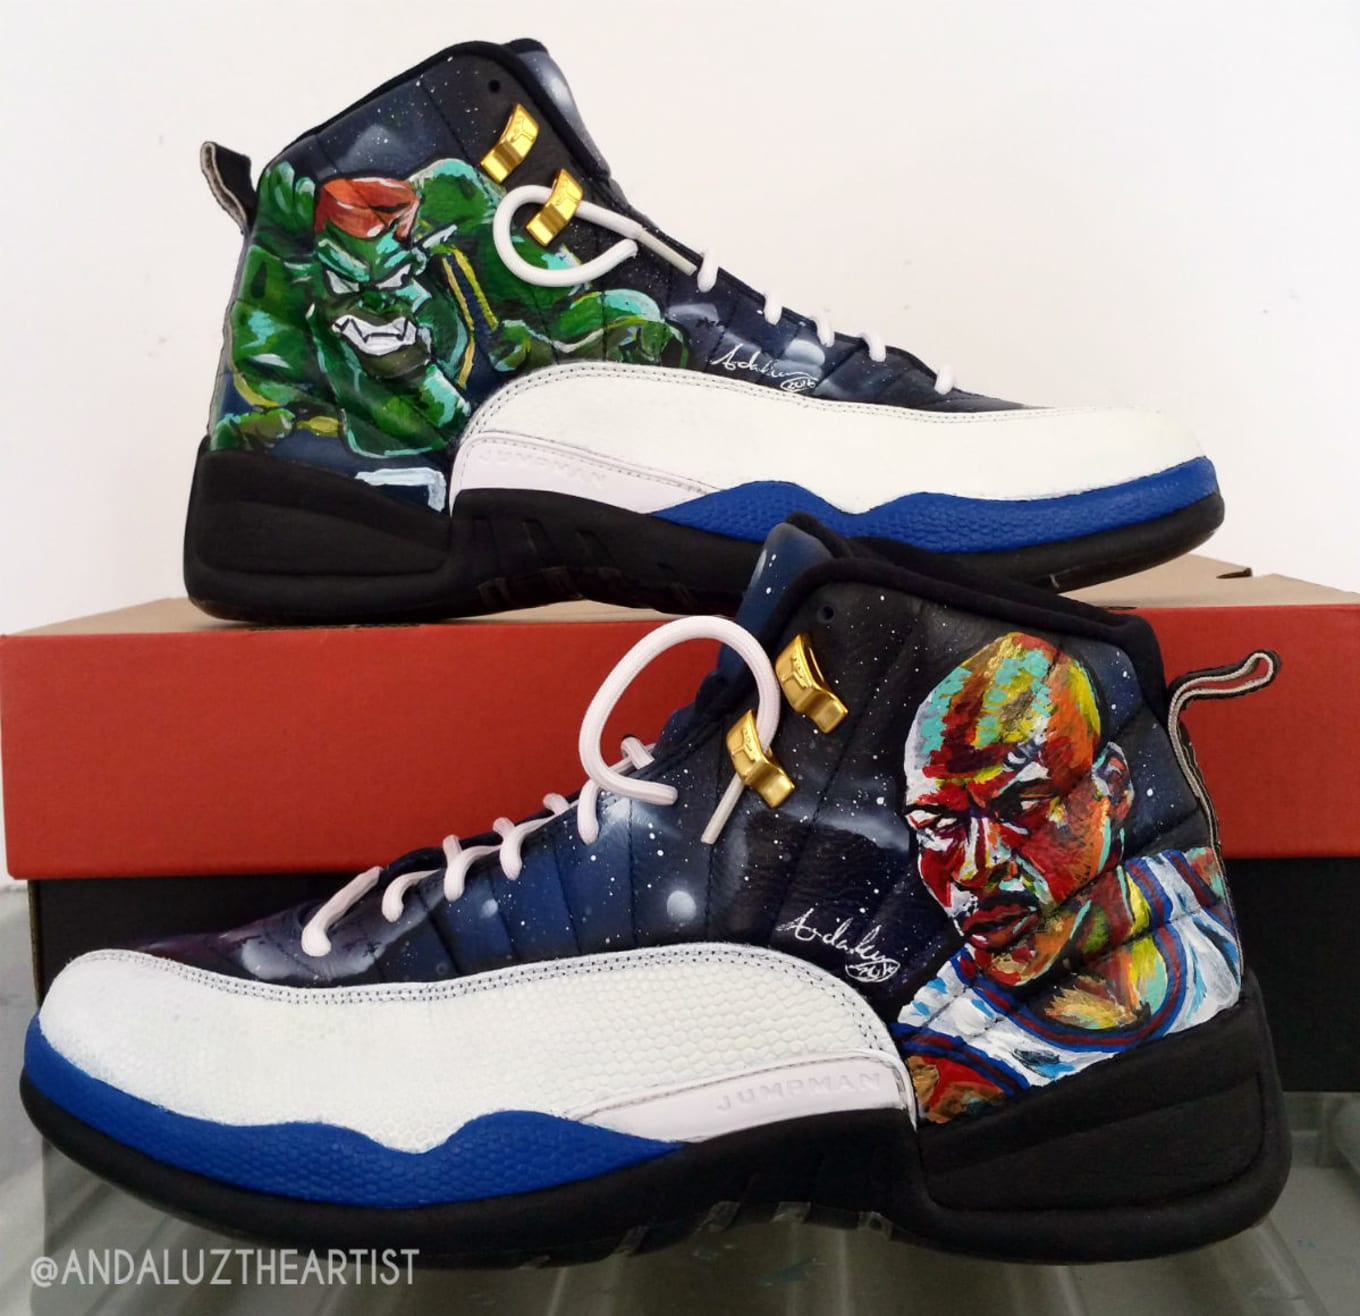 outlet store 66bd3 4d9ff Air Jordan 12 by Andaluz the Artist